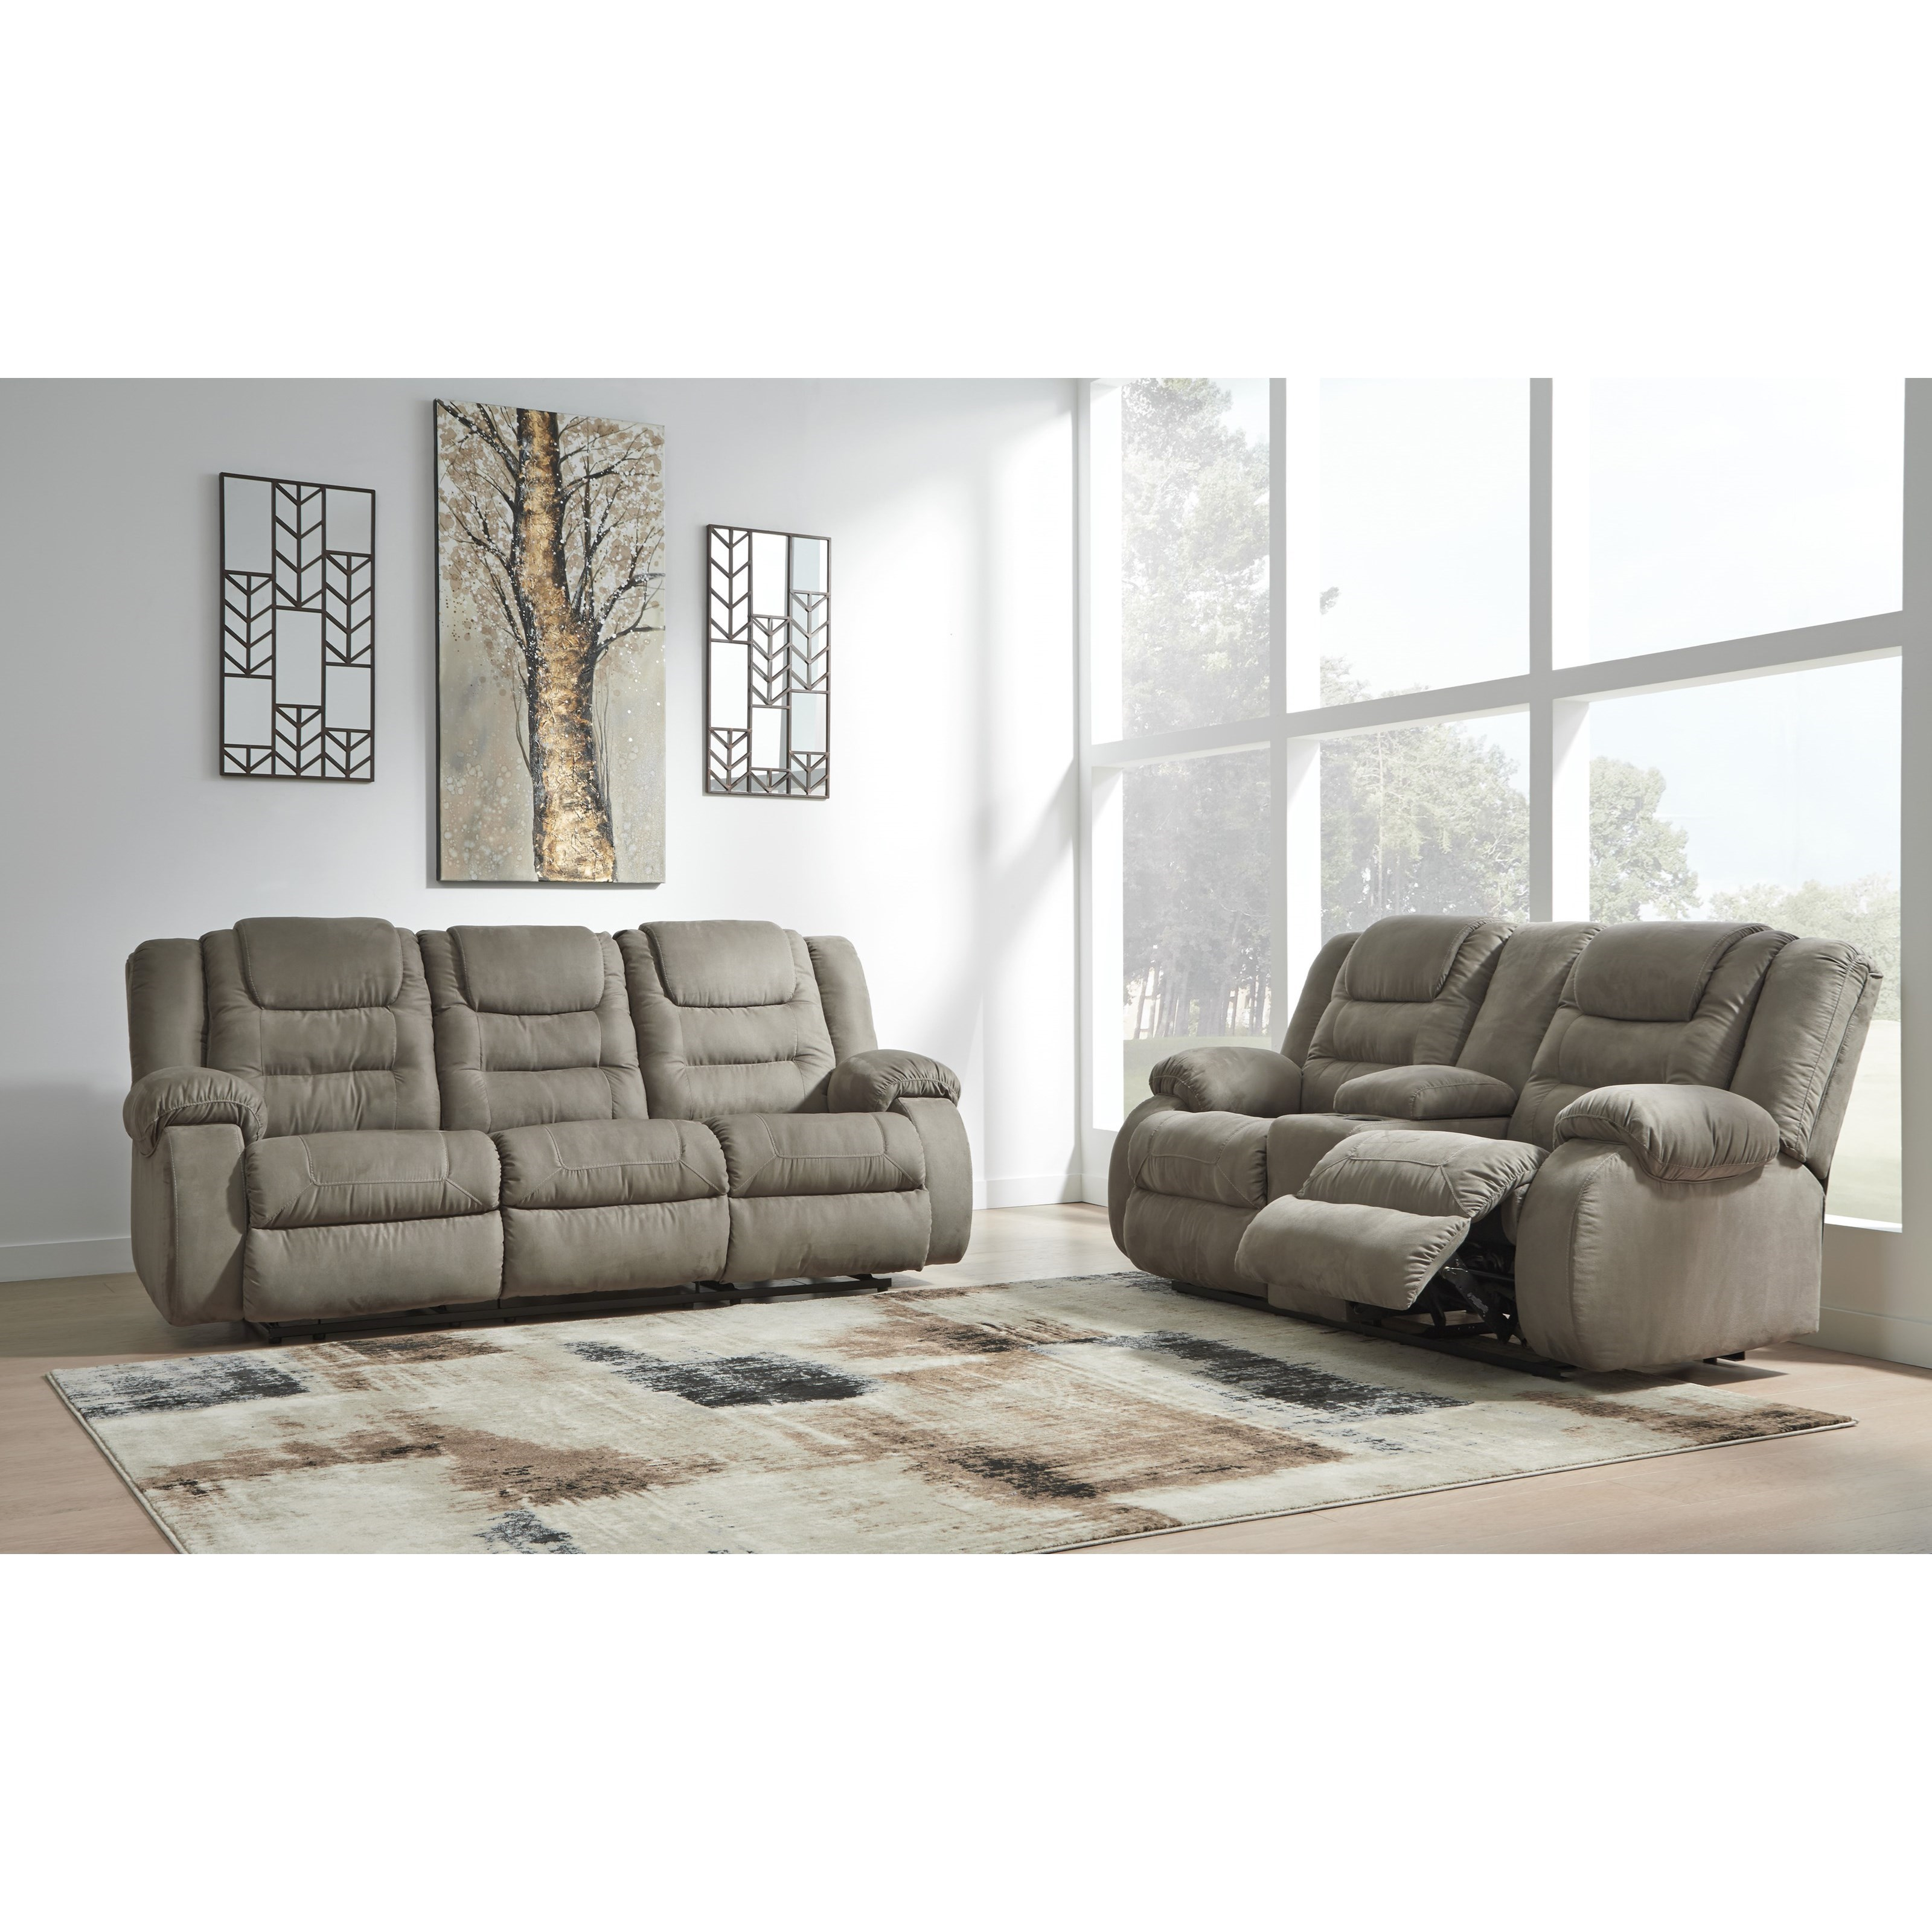 Ashley Furniture Superstore: Signature Design By Ashley McCade Reclining Living Room